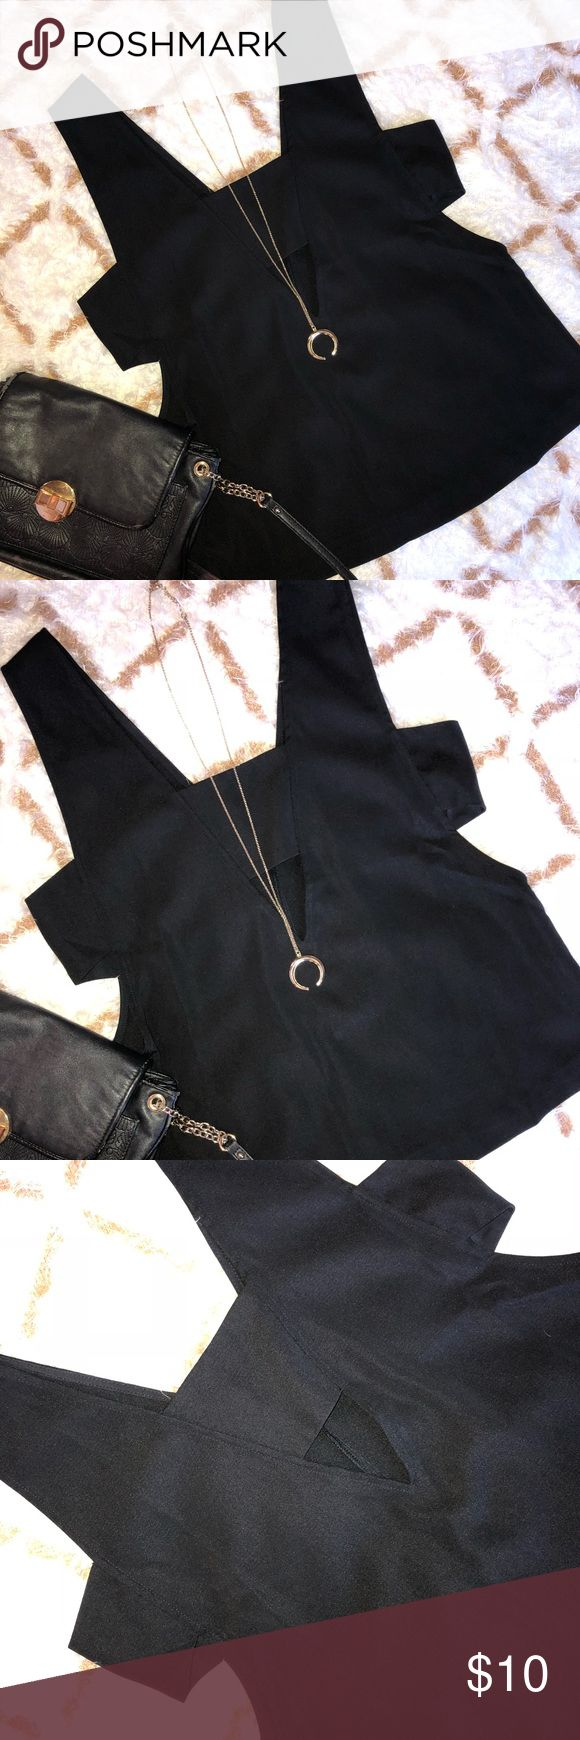 Forever 21 Cut-Out Top Sexy cut outs - one small triangle in front and cut outs at each arm hole. Cute with sexy bra Leyte or lacy black bra underneath. Pair with a body chain, black leggings and heels for a night out! Like new condition. Offers always welcome. Forever 21 Tops Tank Tops